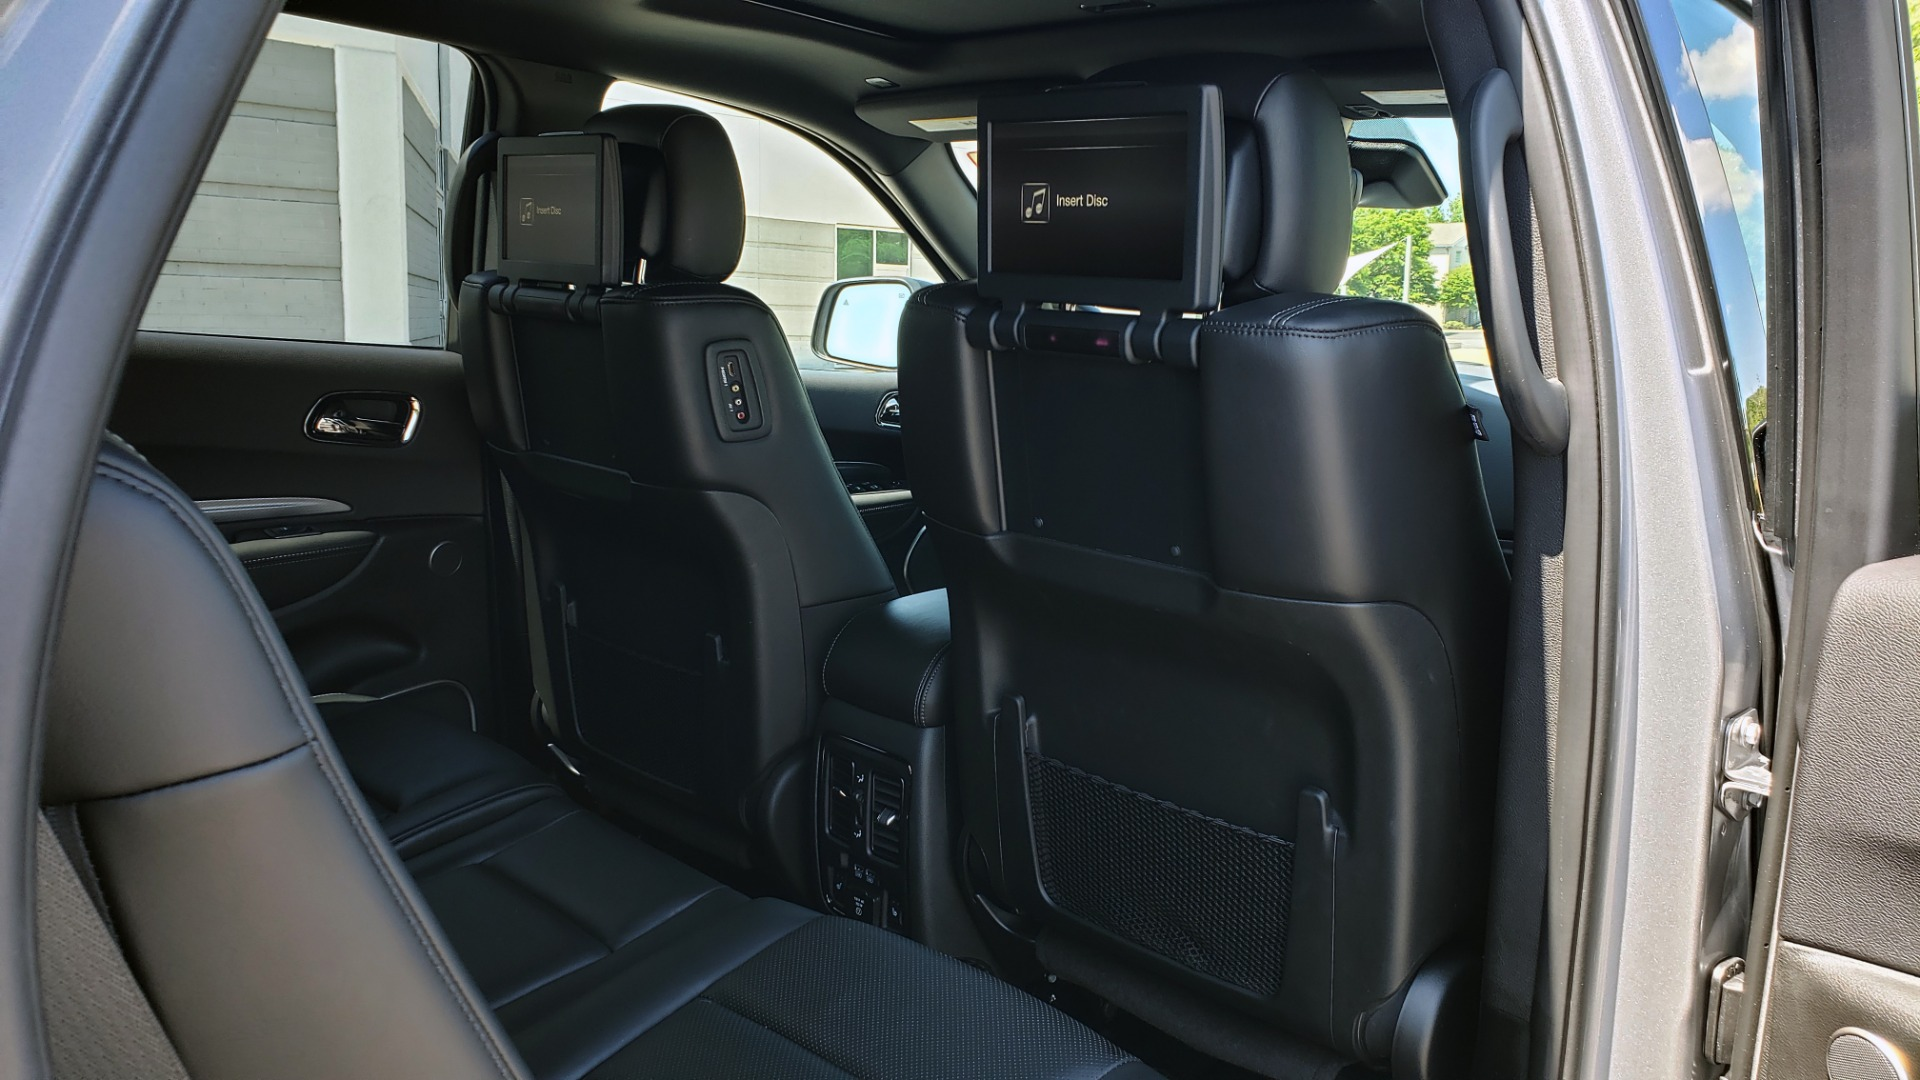 Used 2019 Dodge DURANGO R/T BLACKTOP AWD / TECH / ADAPT CRUS / TOW GROUP / SUNROOF / REARVIEW for sale Sold at Formula Imports in Charlotte NC 28227 85